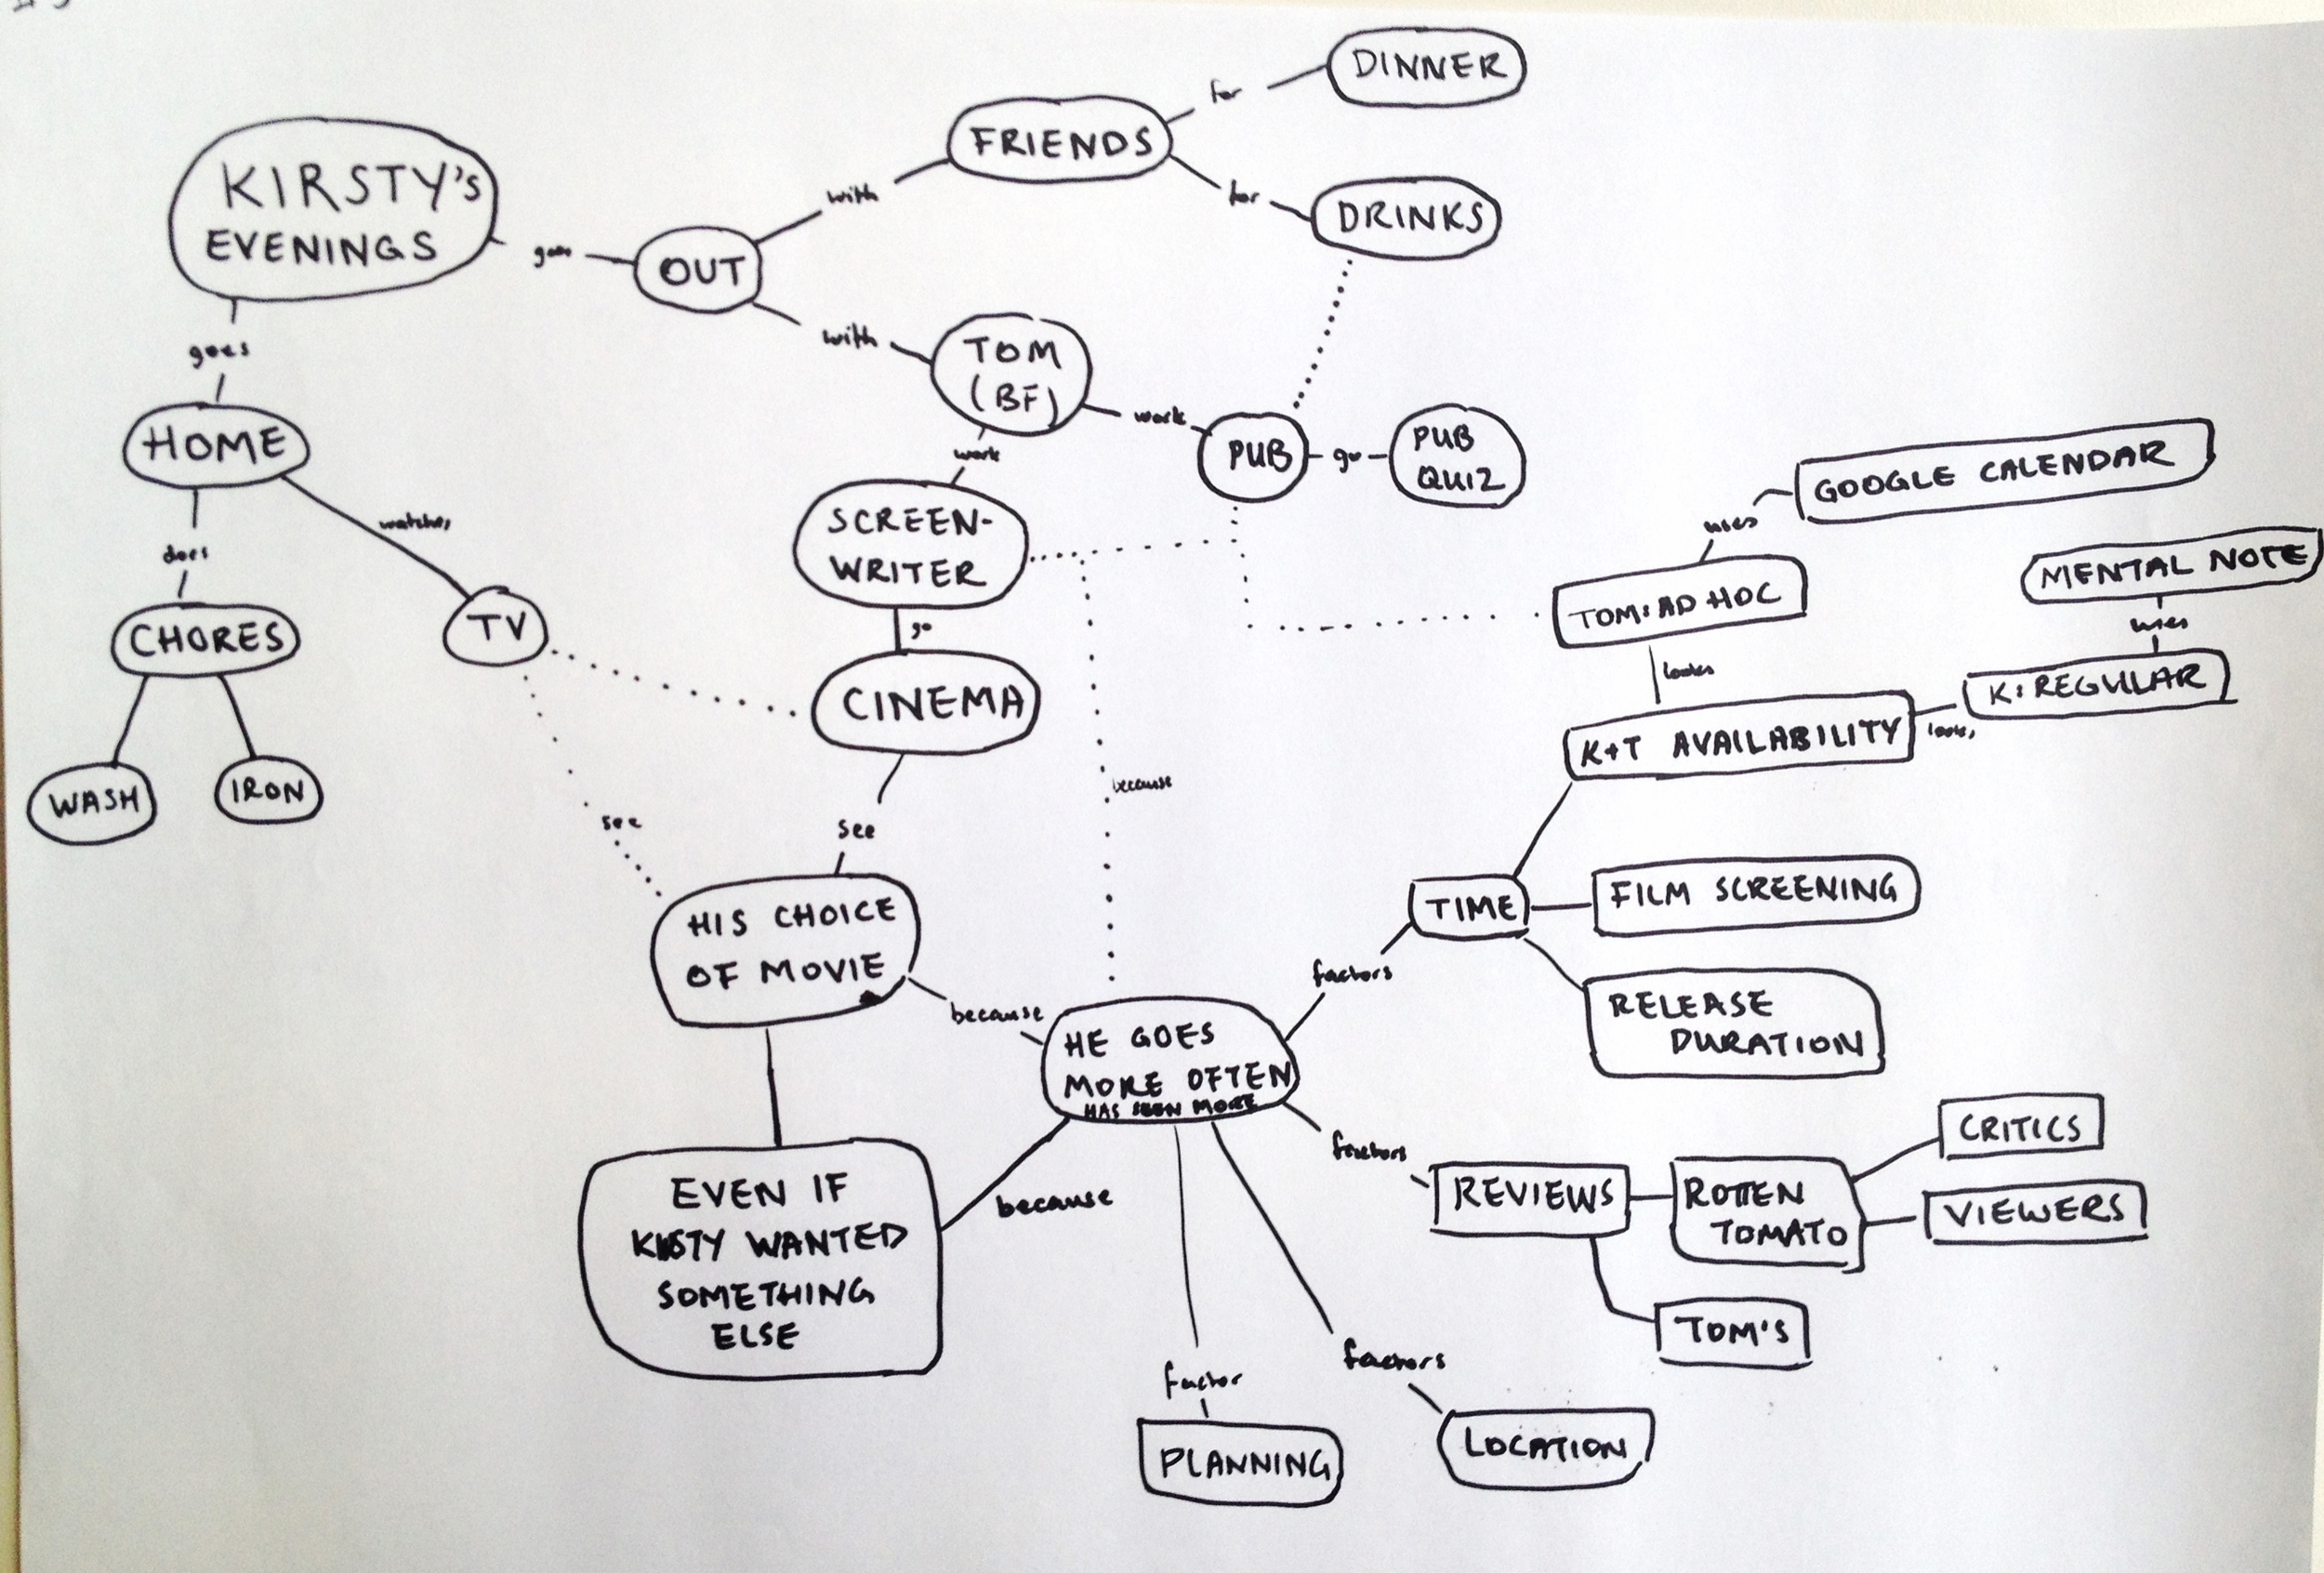 Concept map from user interviews with Kirsty